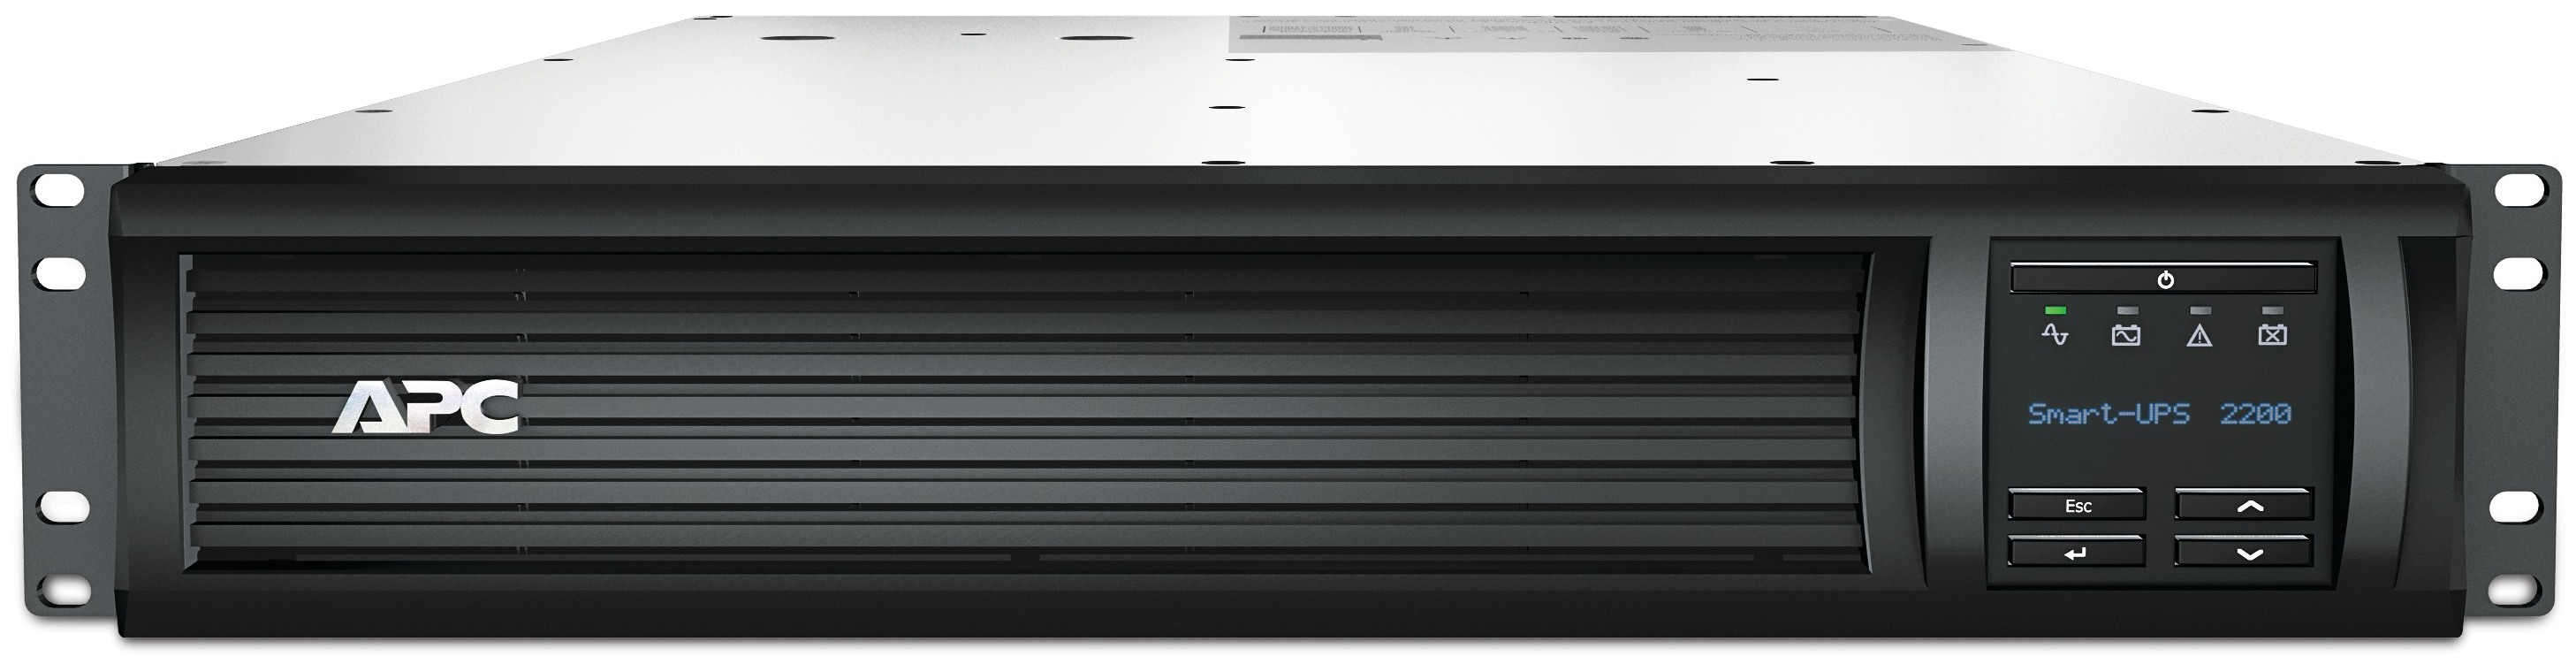 APC-by-Schneider-Electric-Smart-UPS-SMT2200RMI2U-Front